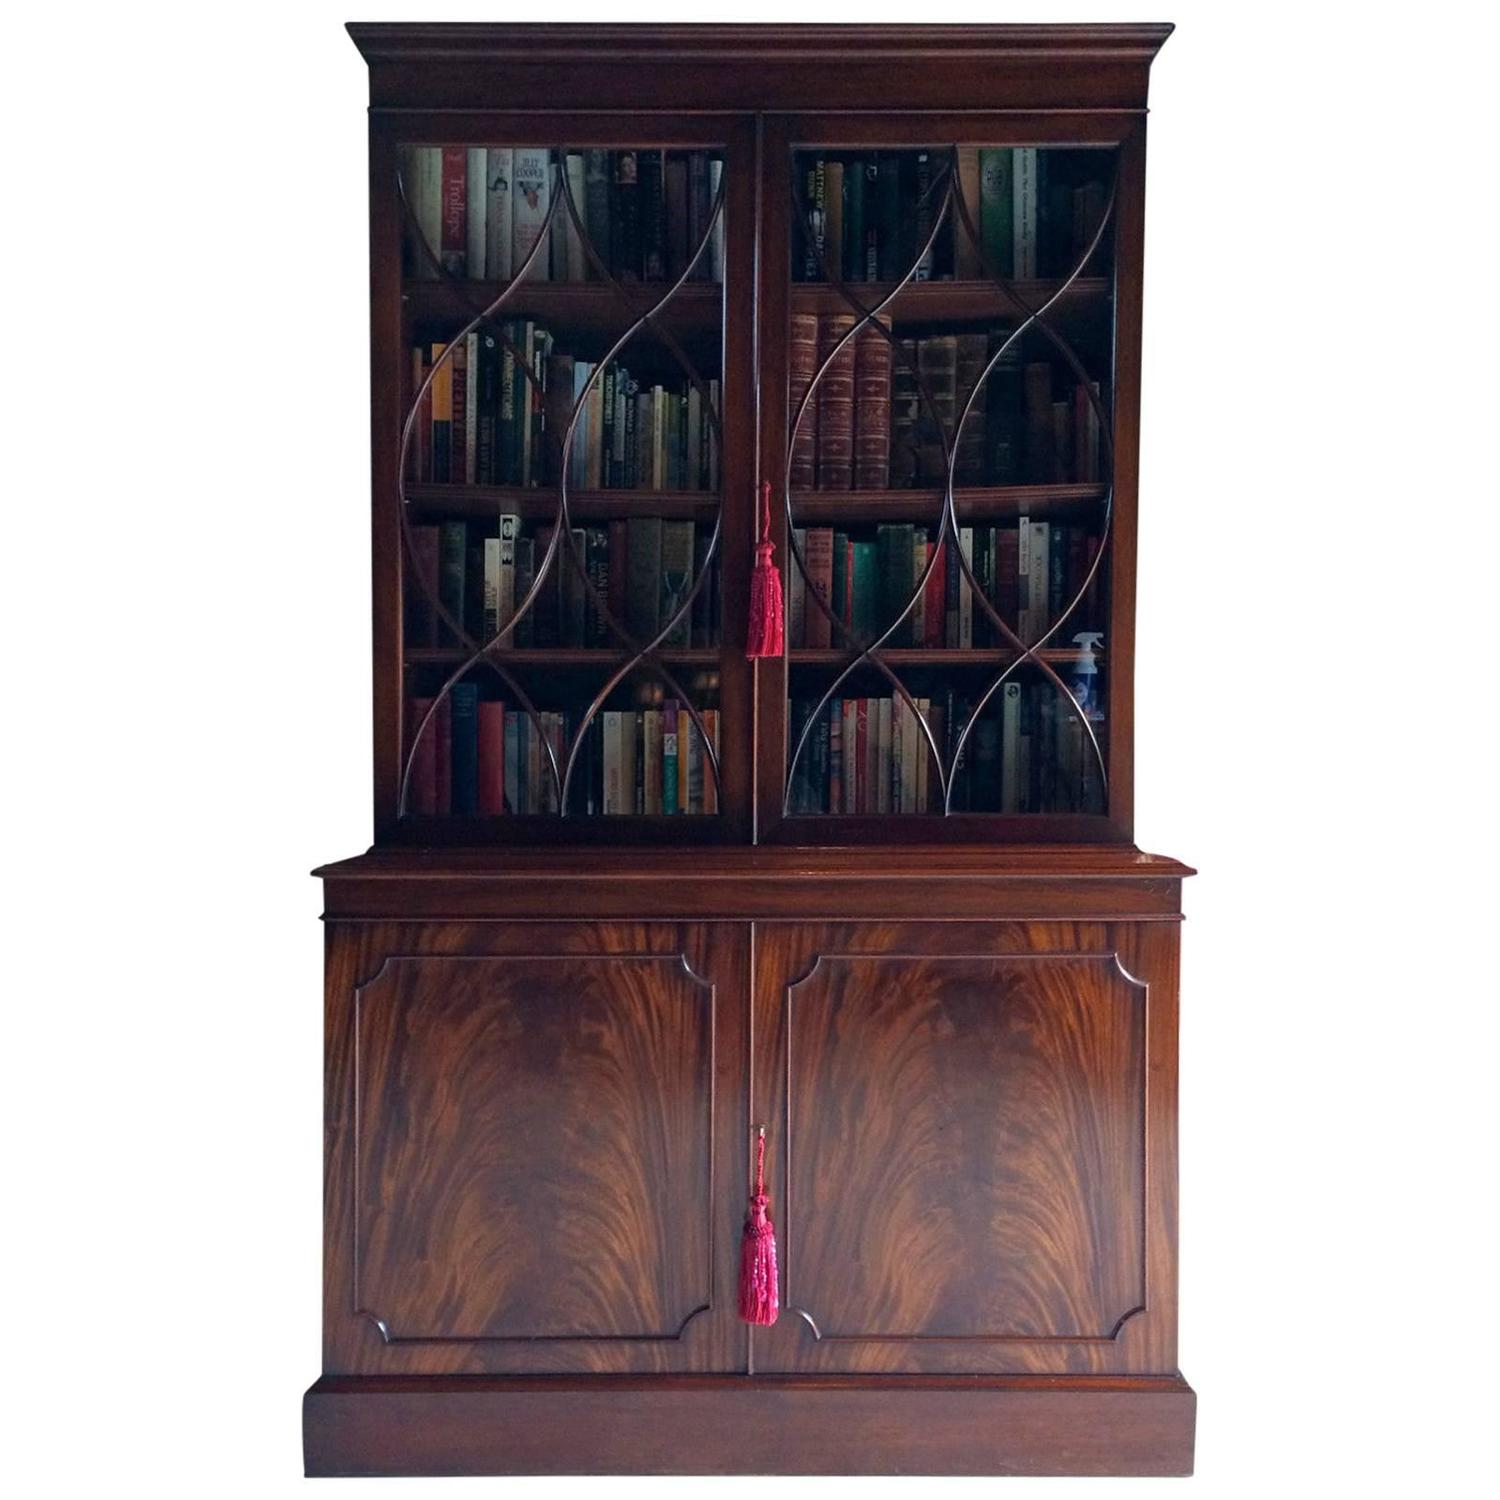 #A22955 Antique Style Bookcase Mahogany Display Cabinet Two Door  with 1500x1500 px of Recommended Mahogany Display Cabinets With Glass Doors 15001500 save image @ avoidforclosure.info